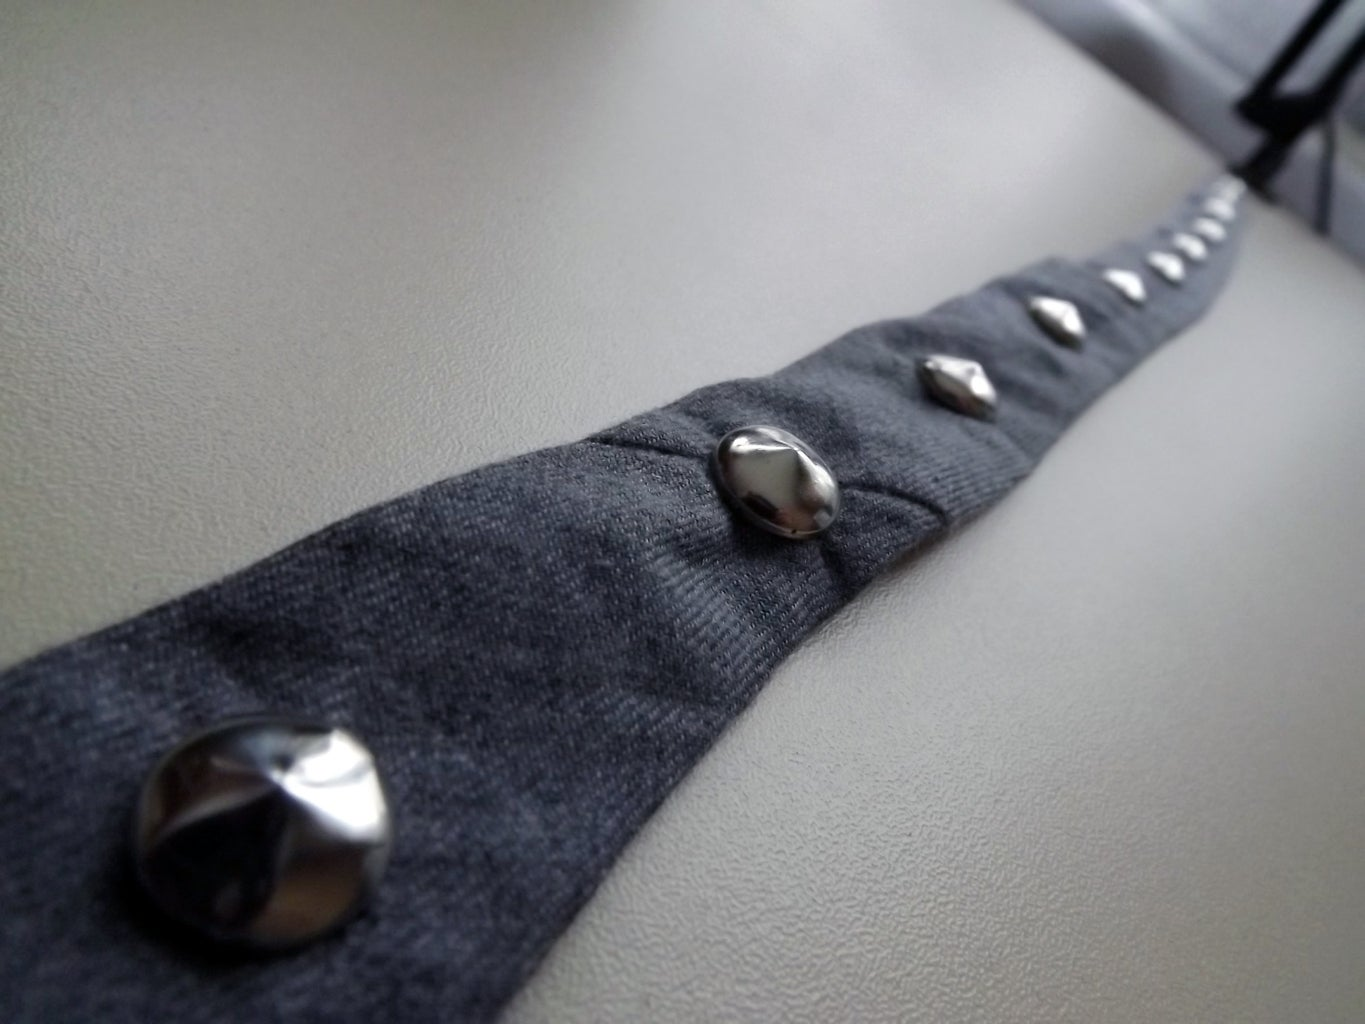 Sewing the Studded Hatband Onto the Hat